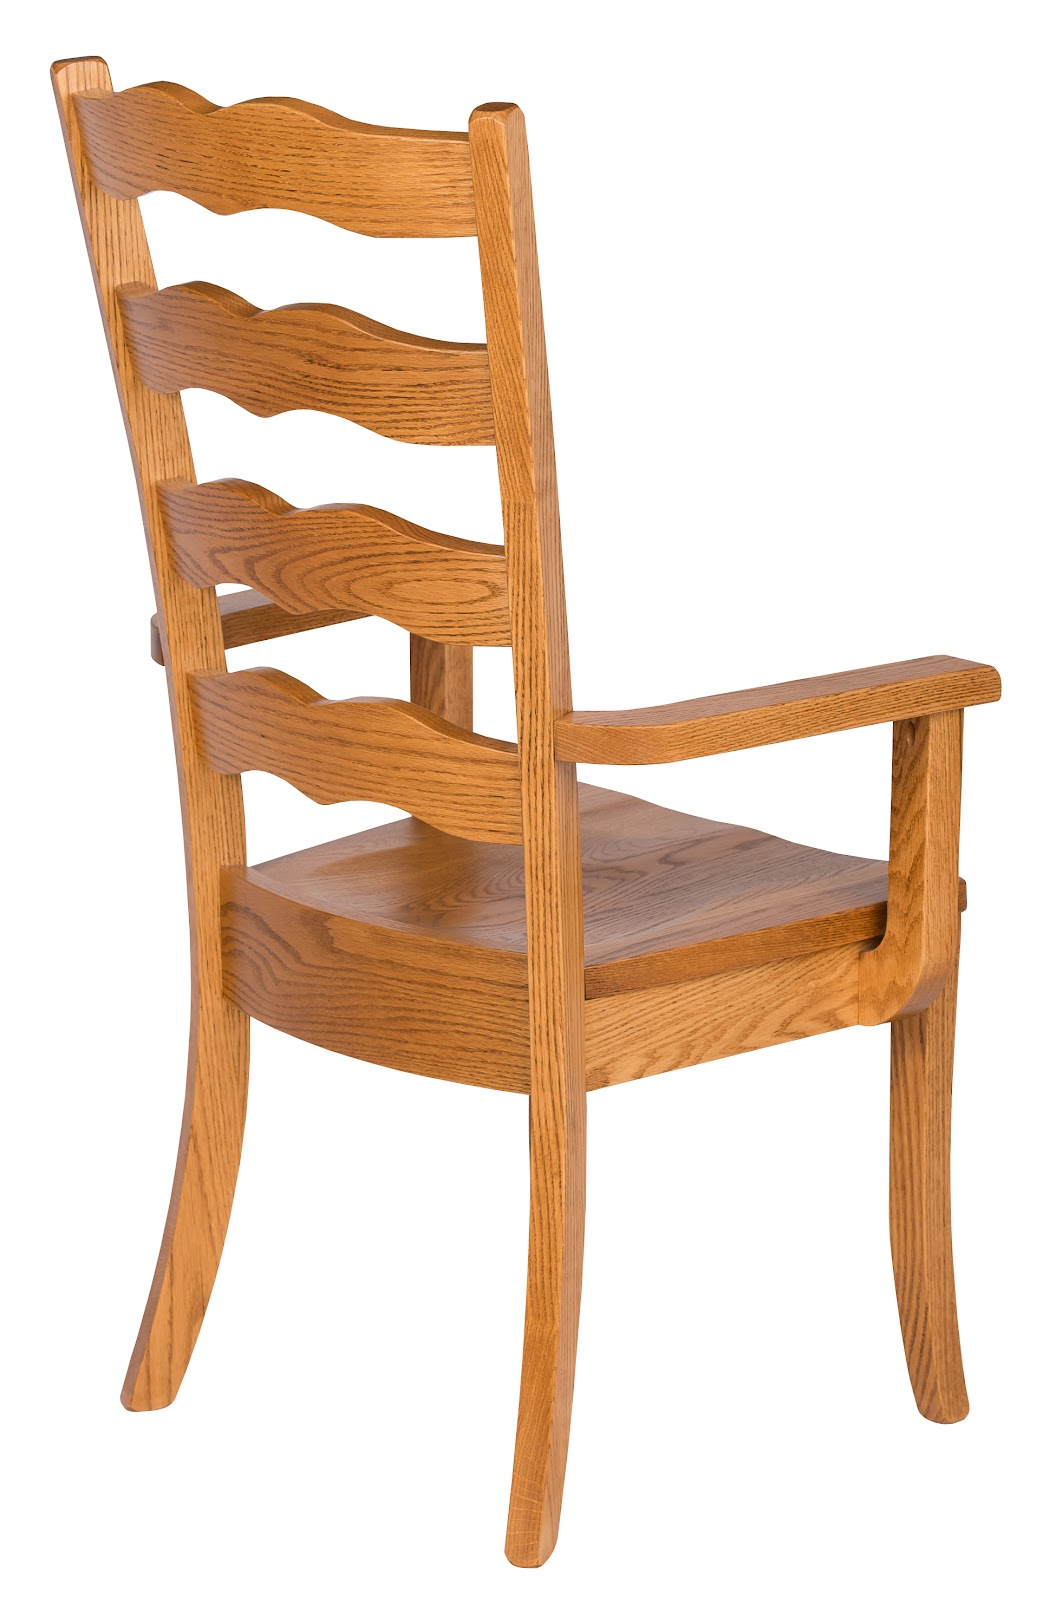 Lynwood Dining Chair Dining Room Chair In The Lynwood Style